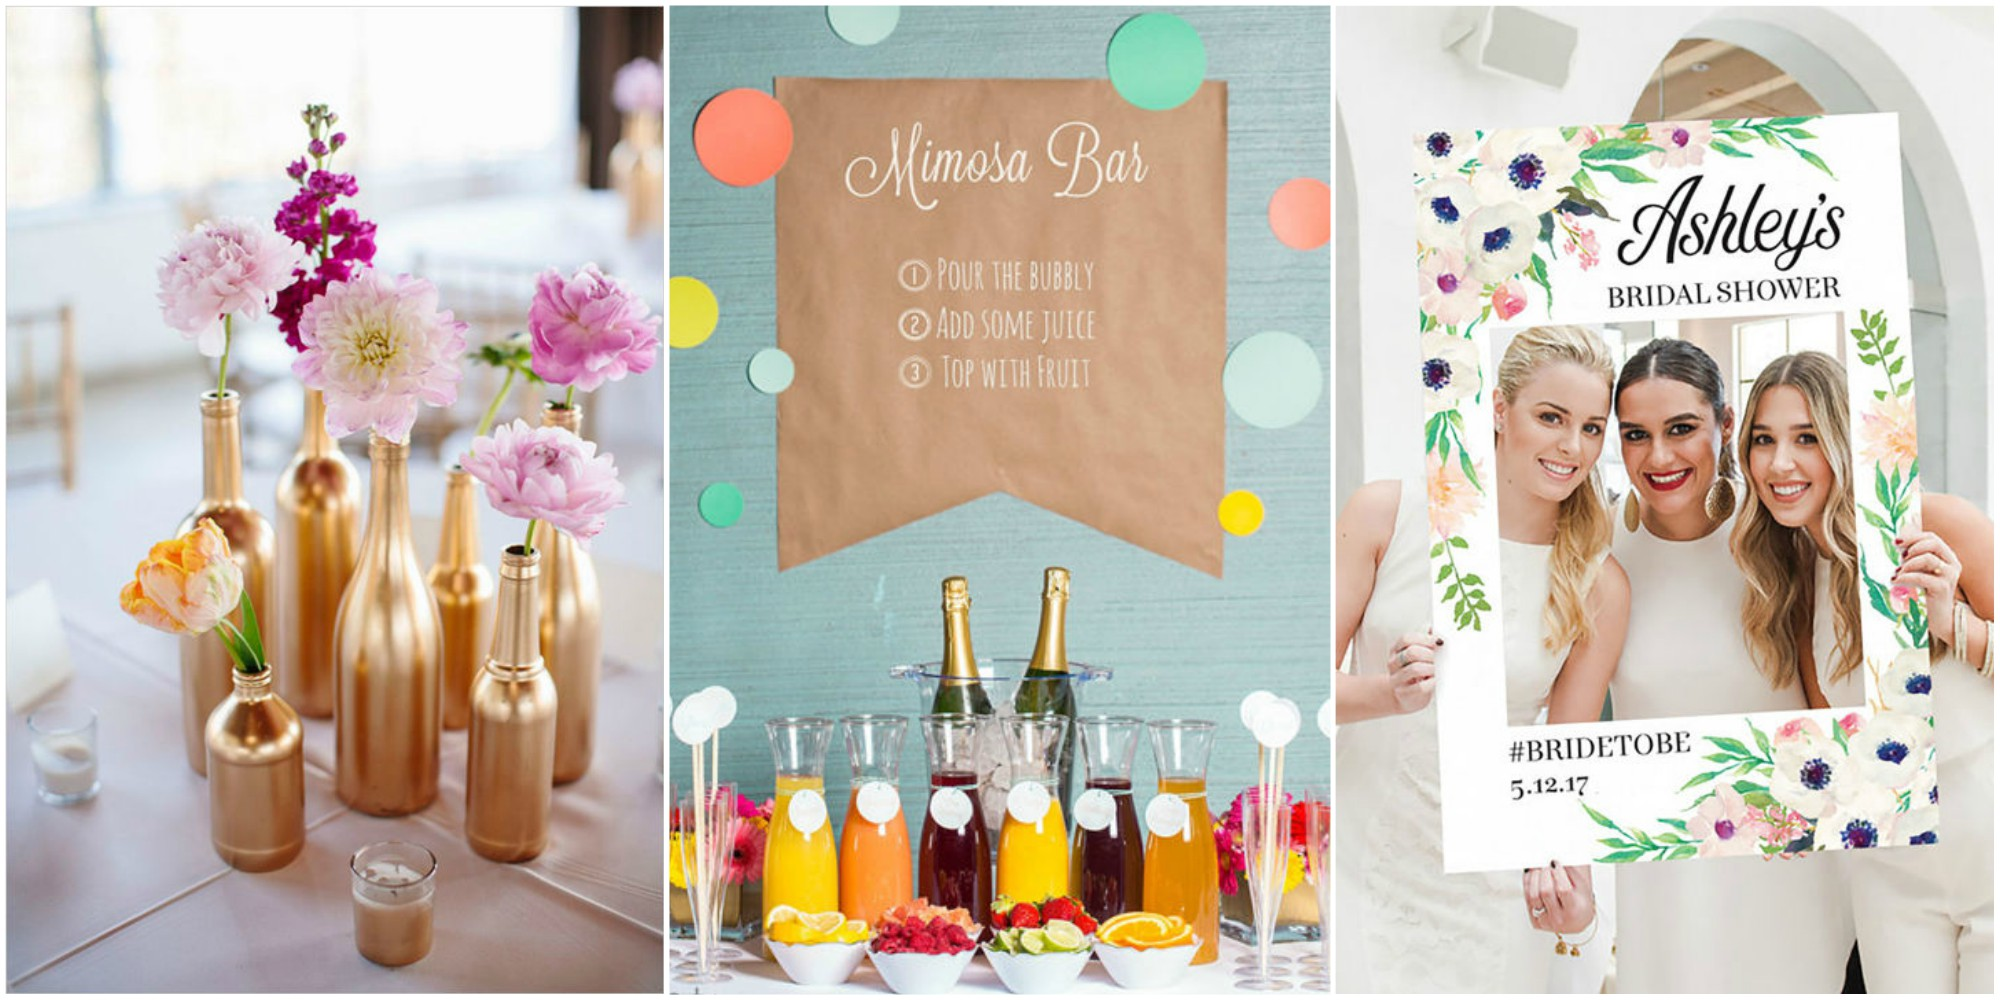 50 best bridal shower ideas fun themes food and for Wedding showers themes